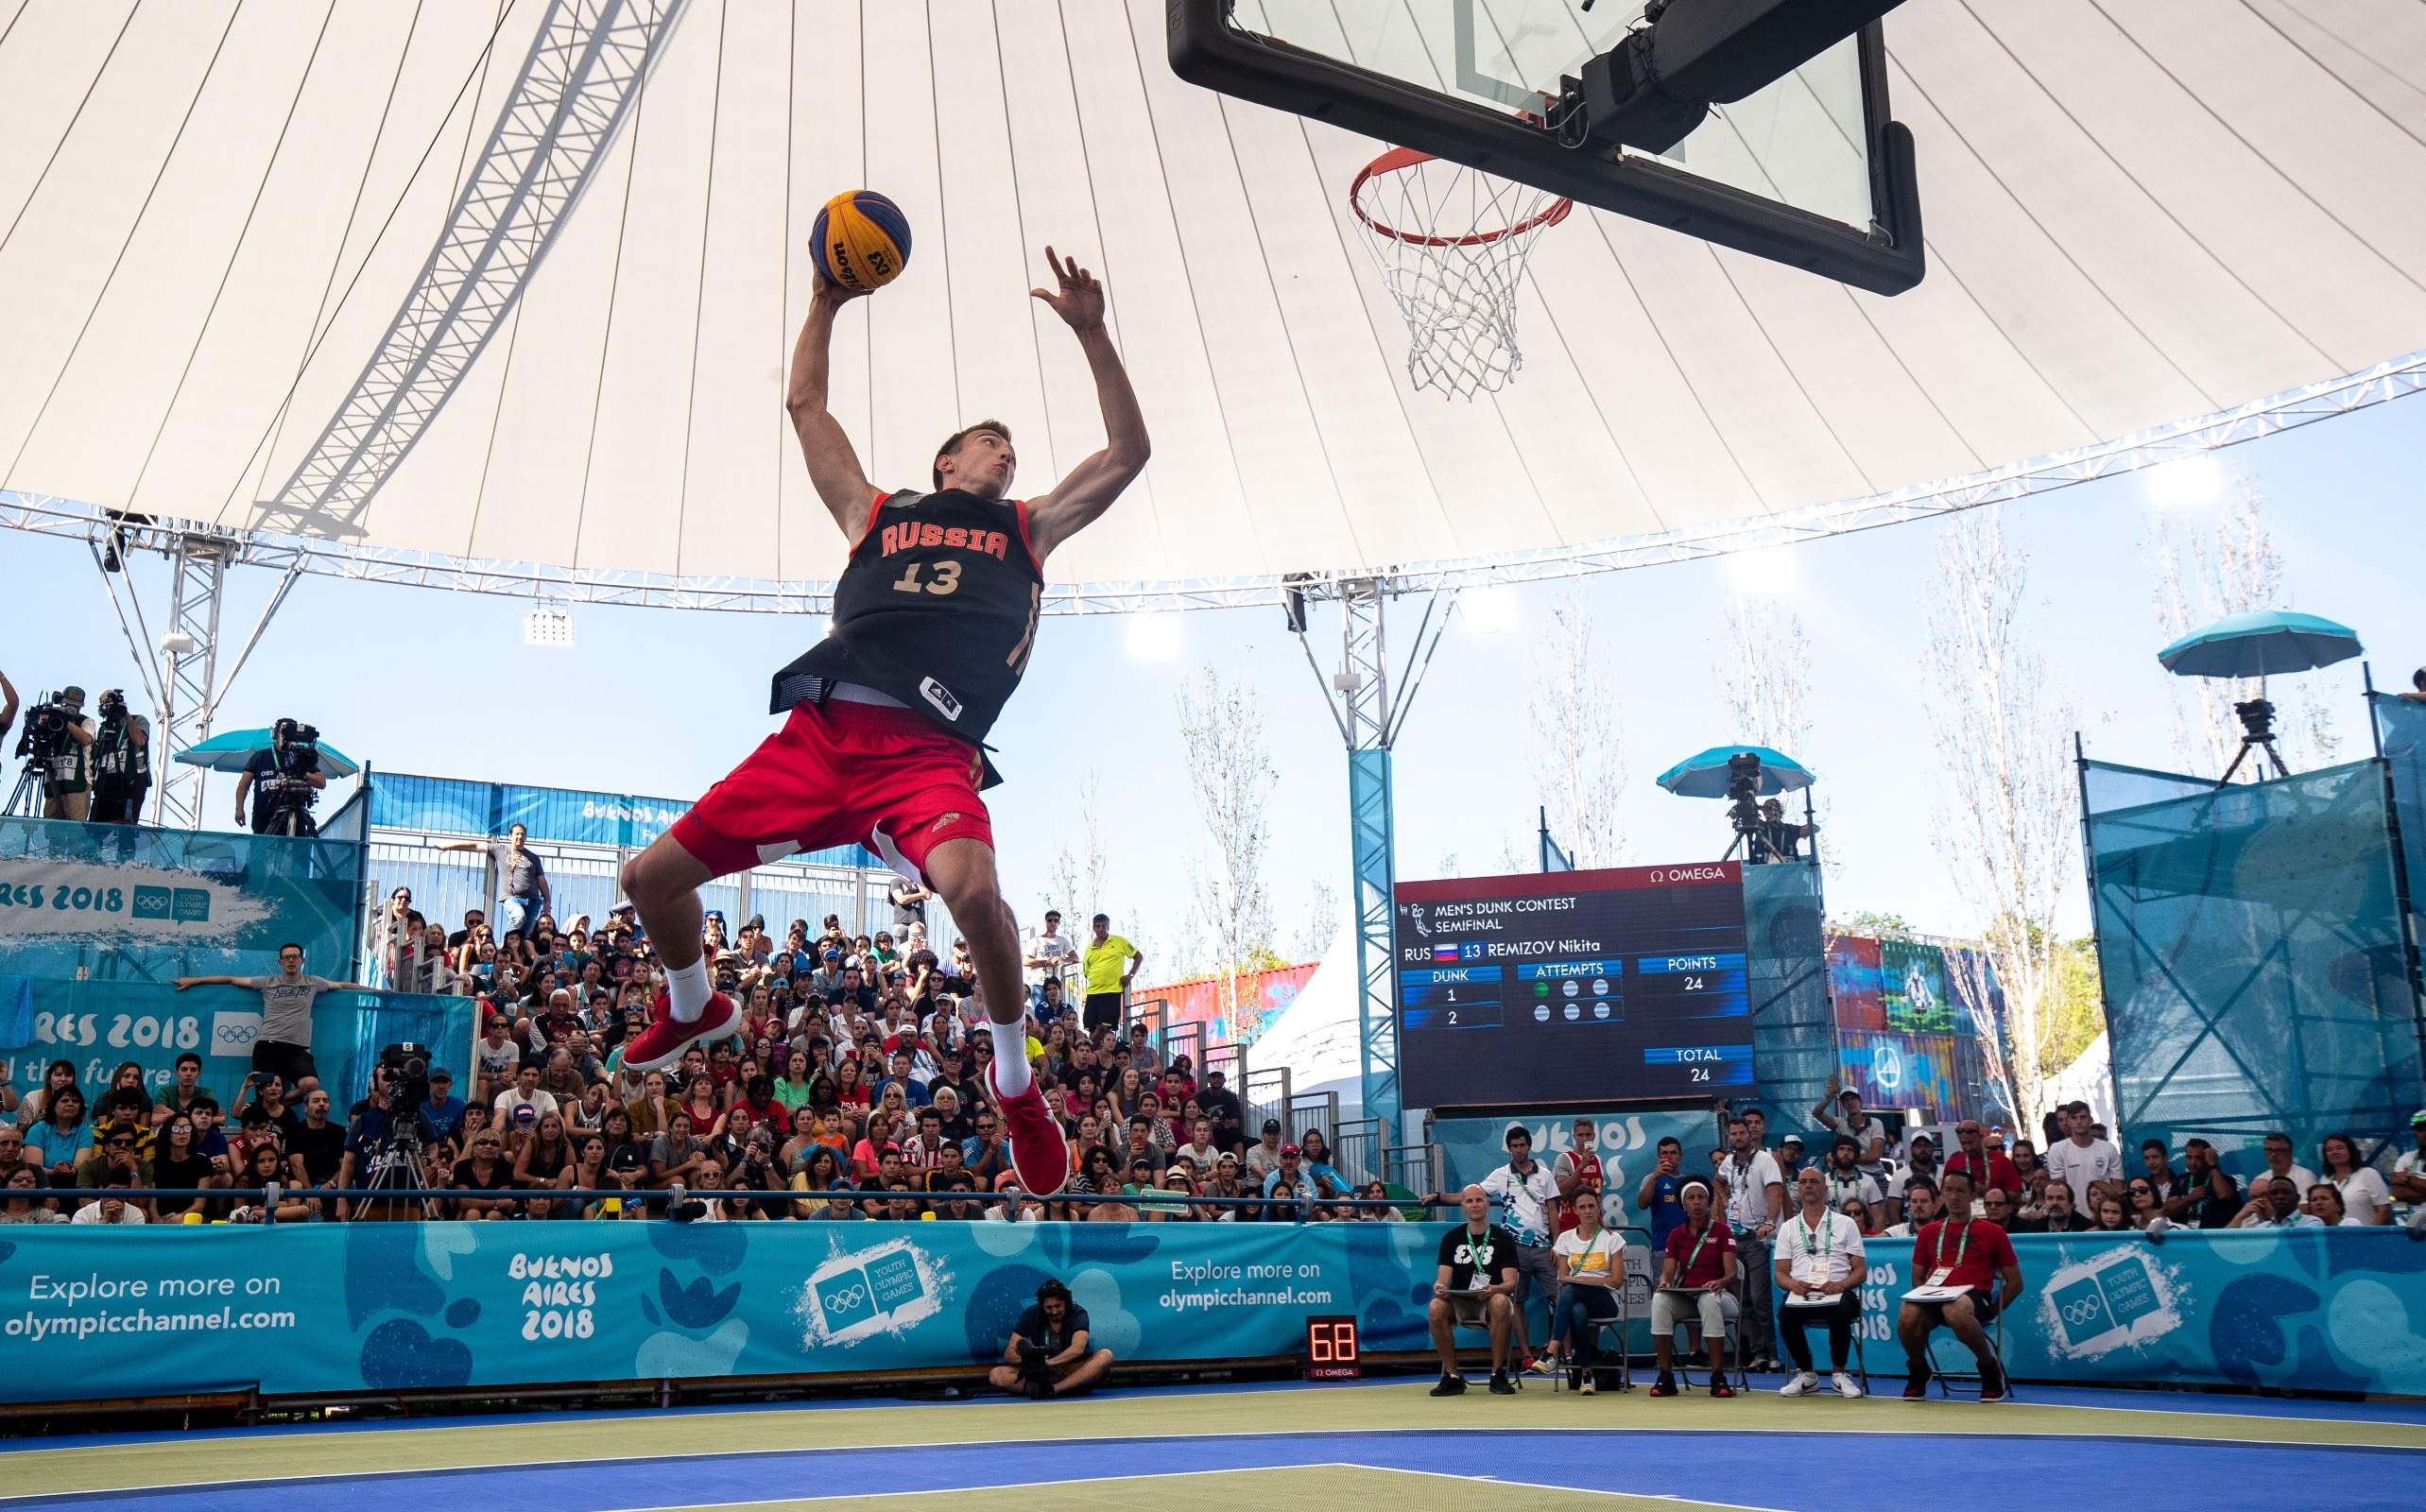 Buenos Aires 2018 - Basketball 3x3 - Men's Dunk Contest